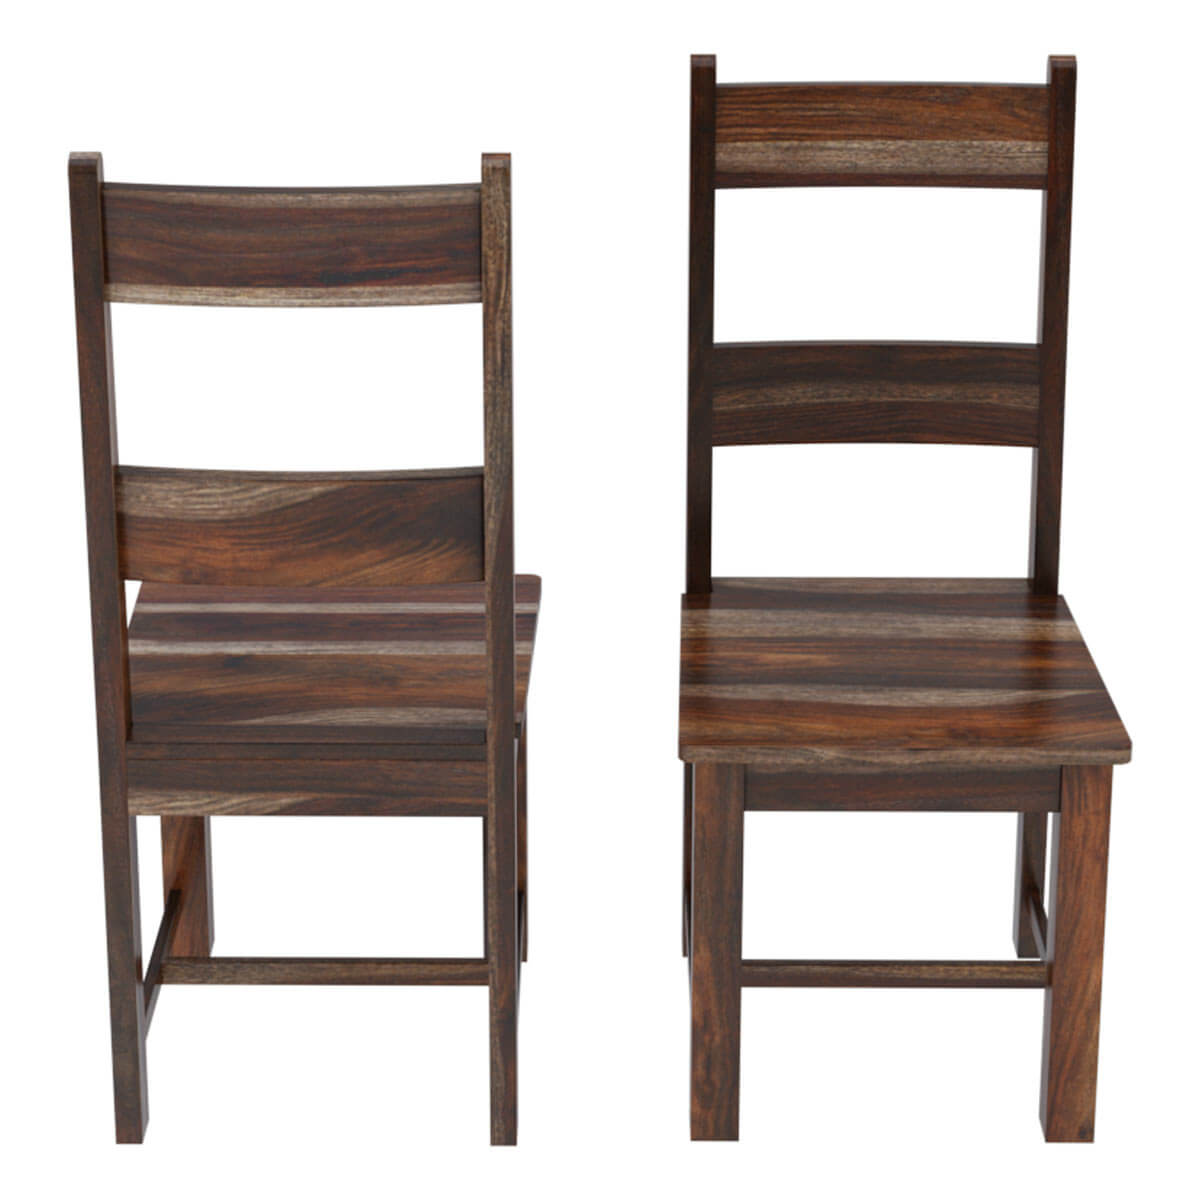 Rustic Mission Santa Cruz Solid Wood Dining Room Set For 4: Alabama Modern Rustic Solid Wood Dining Table And Chair Set